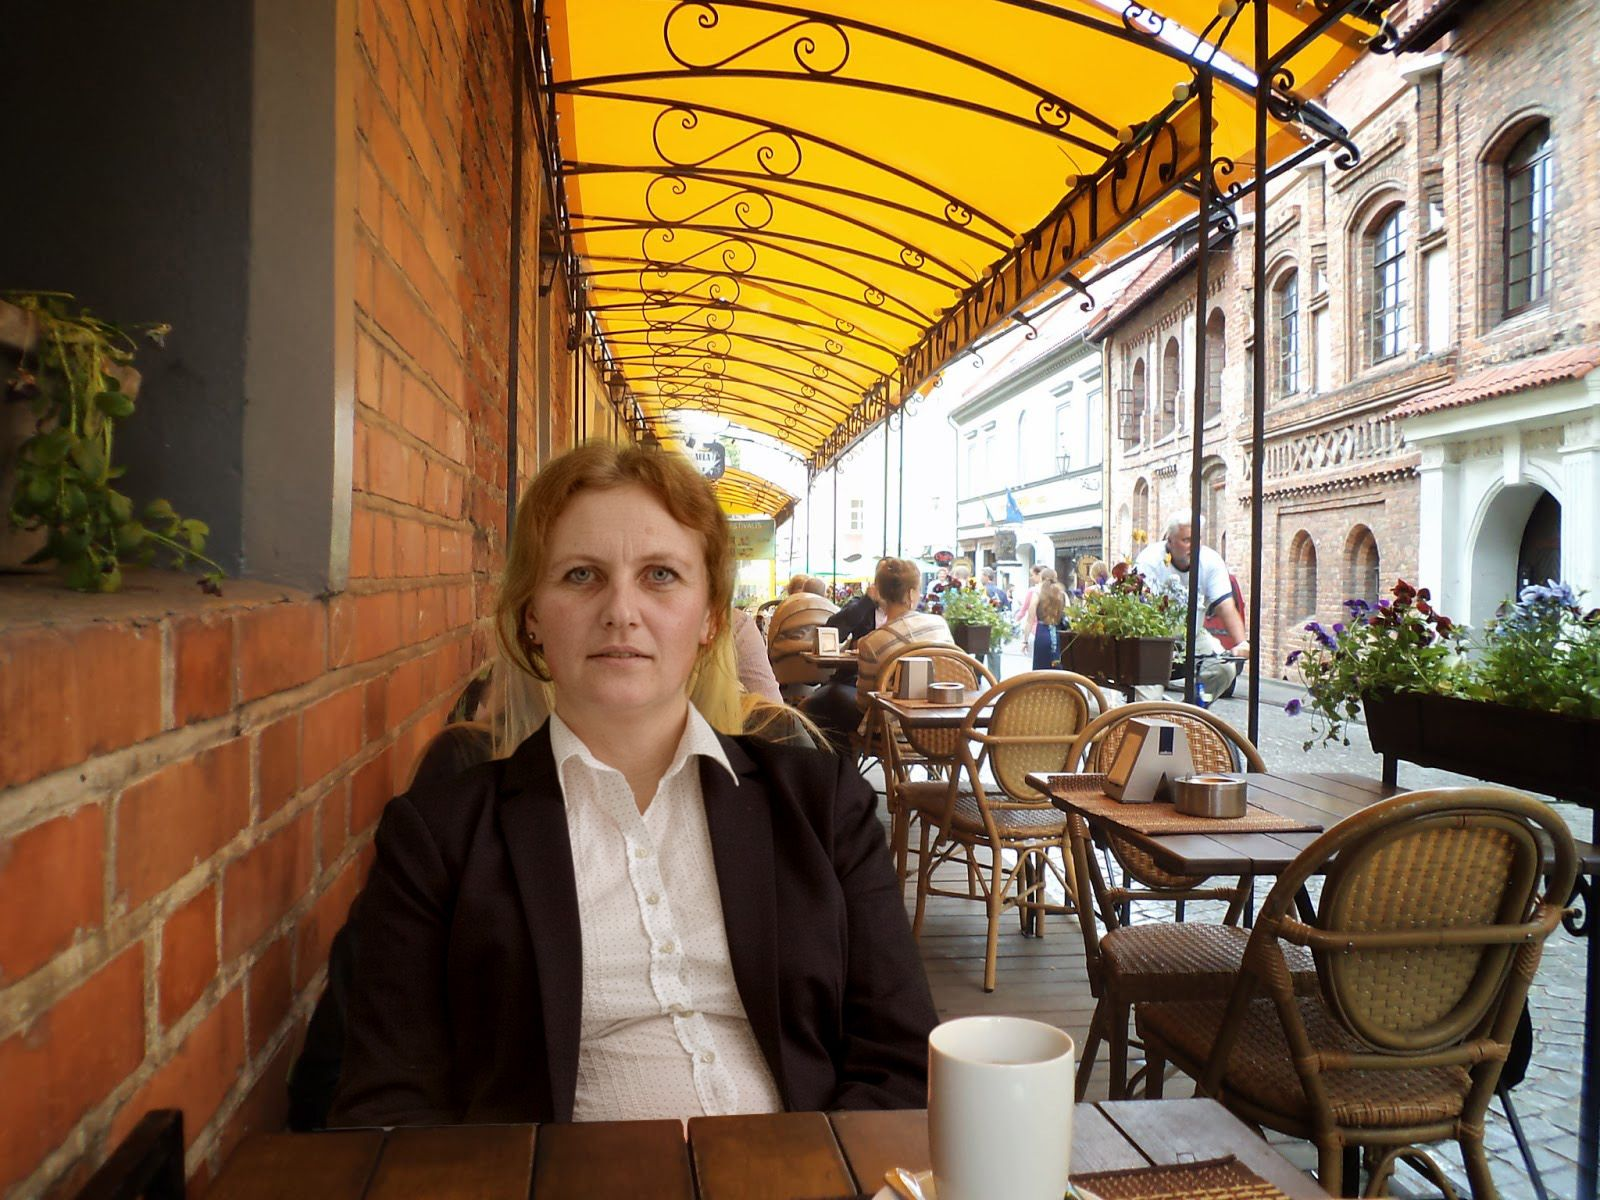 Rugilė from Lithuania: Working in Translation